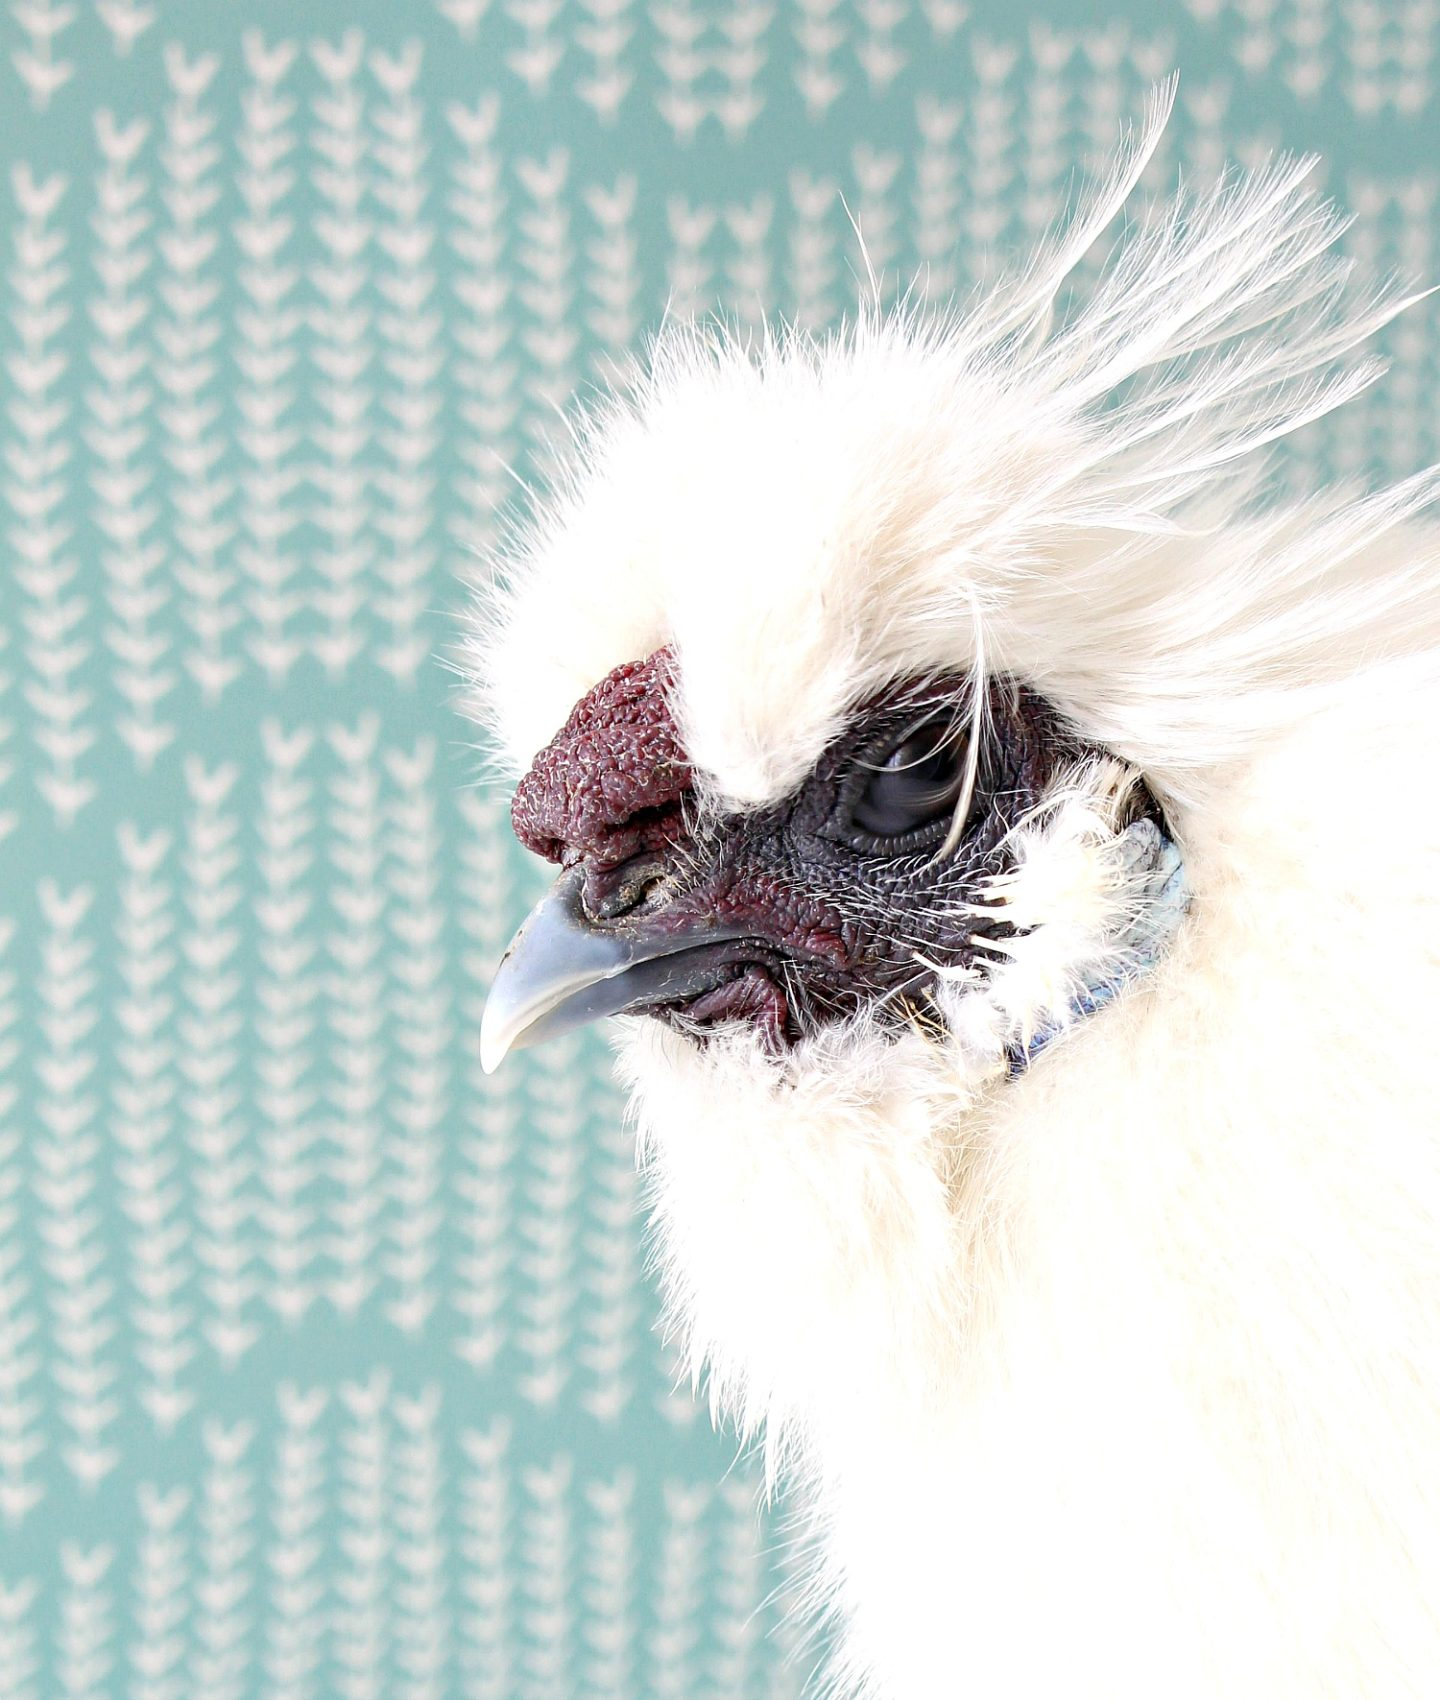 Mulberry Silkie Rooster Comb